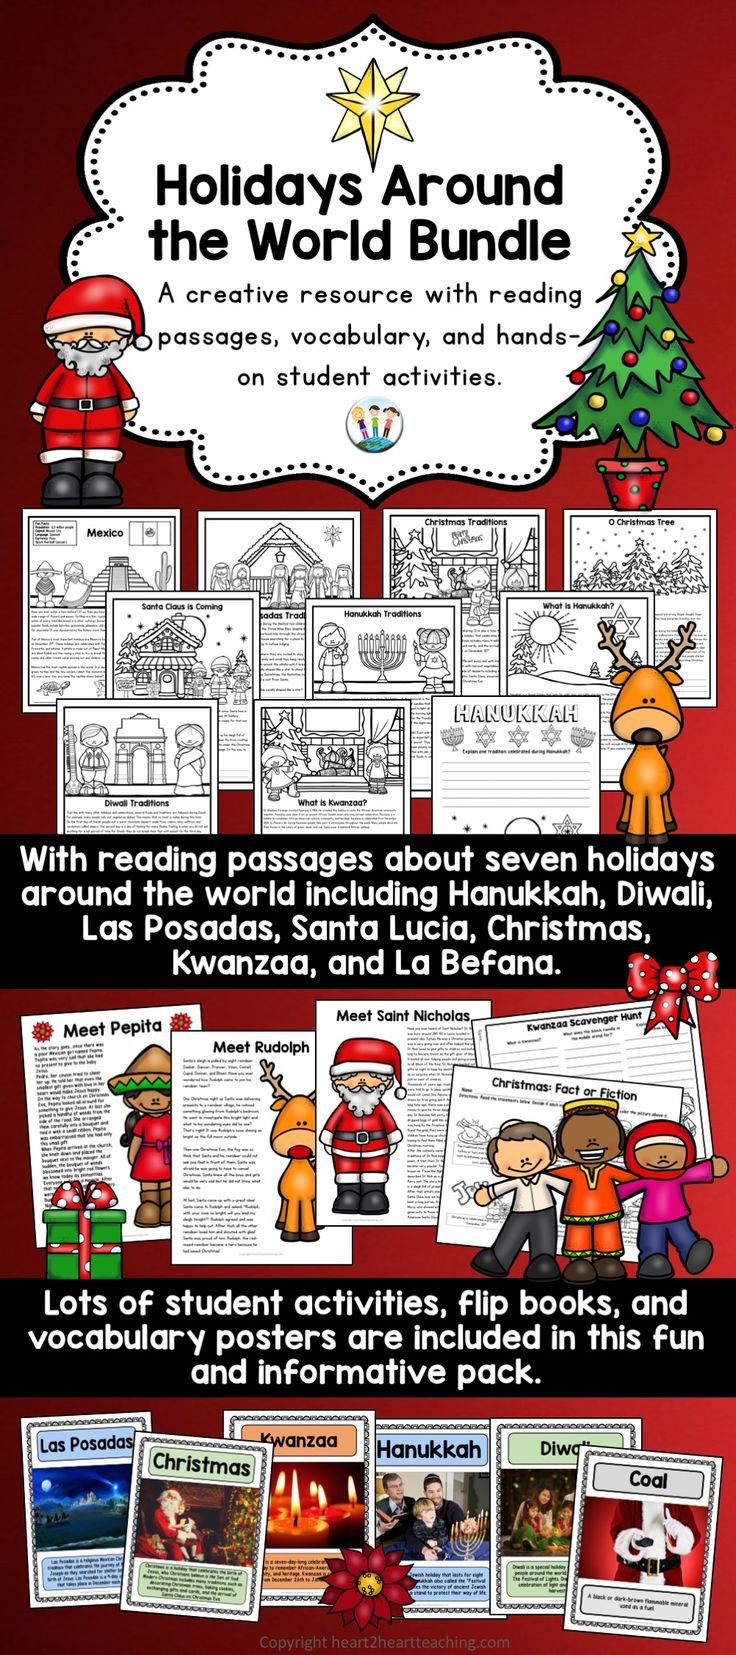 This unit celebrates and teaches about seven winter holidays including Hanukkah, Diwali, La Befana, Las Posadas, Christmas, Kwanzaa, and Santa Lucia. Each holiday includes reading passages, several hands-on activities like scavenger hunt organizers, acrostic fact charts, flip books, and vocabulary photo posters. This Complete BUNDLE has seven activity packs inside with more than 200 pages in all!